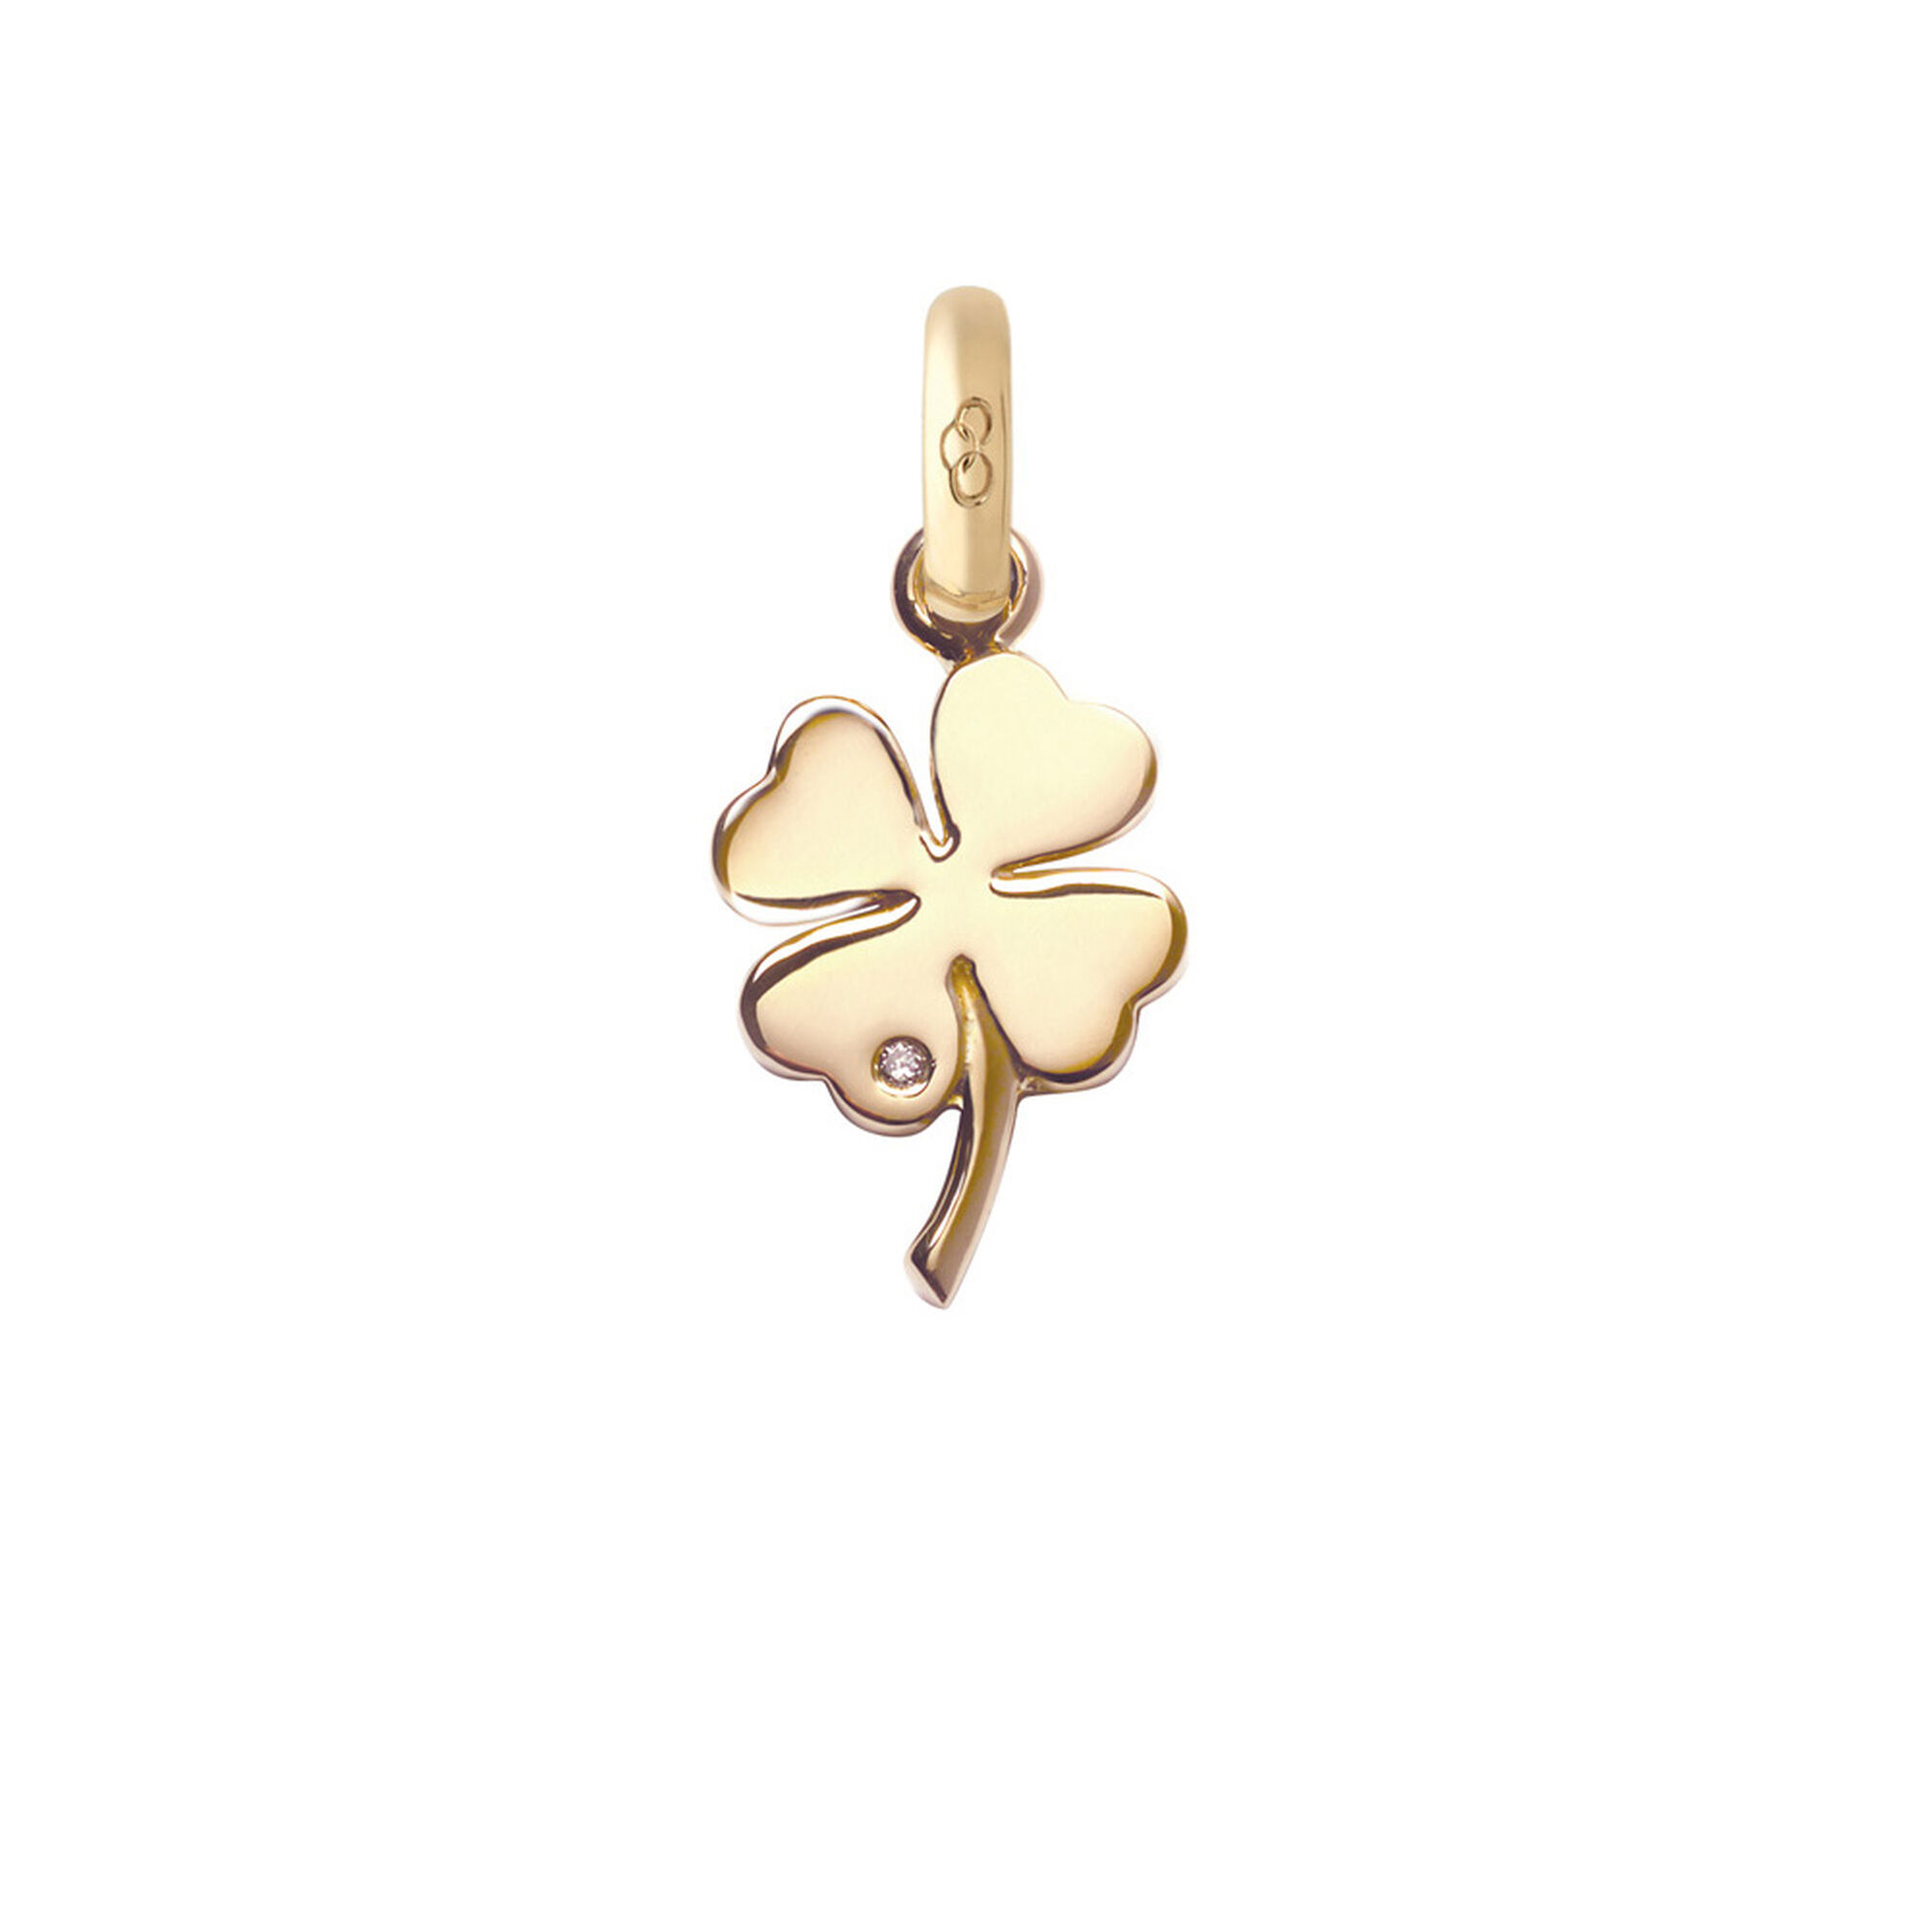 Yellow gold and diamond four leaf clover charm 18kt yellow gold and diamond four leaf clover charm hires mozeypictures Image collections